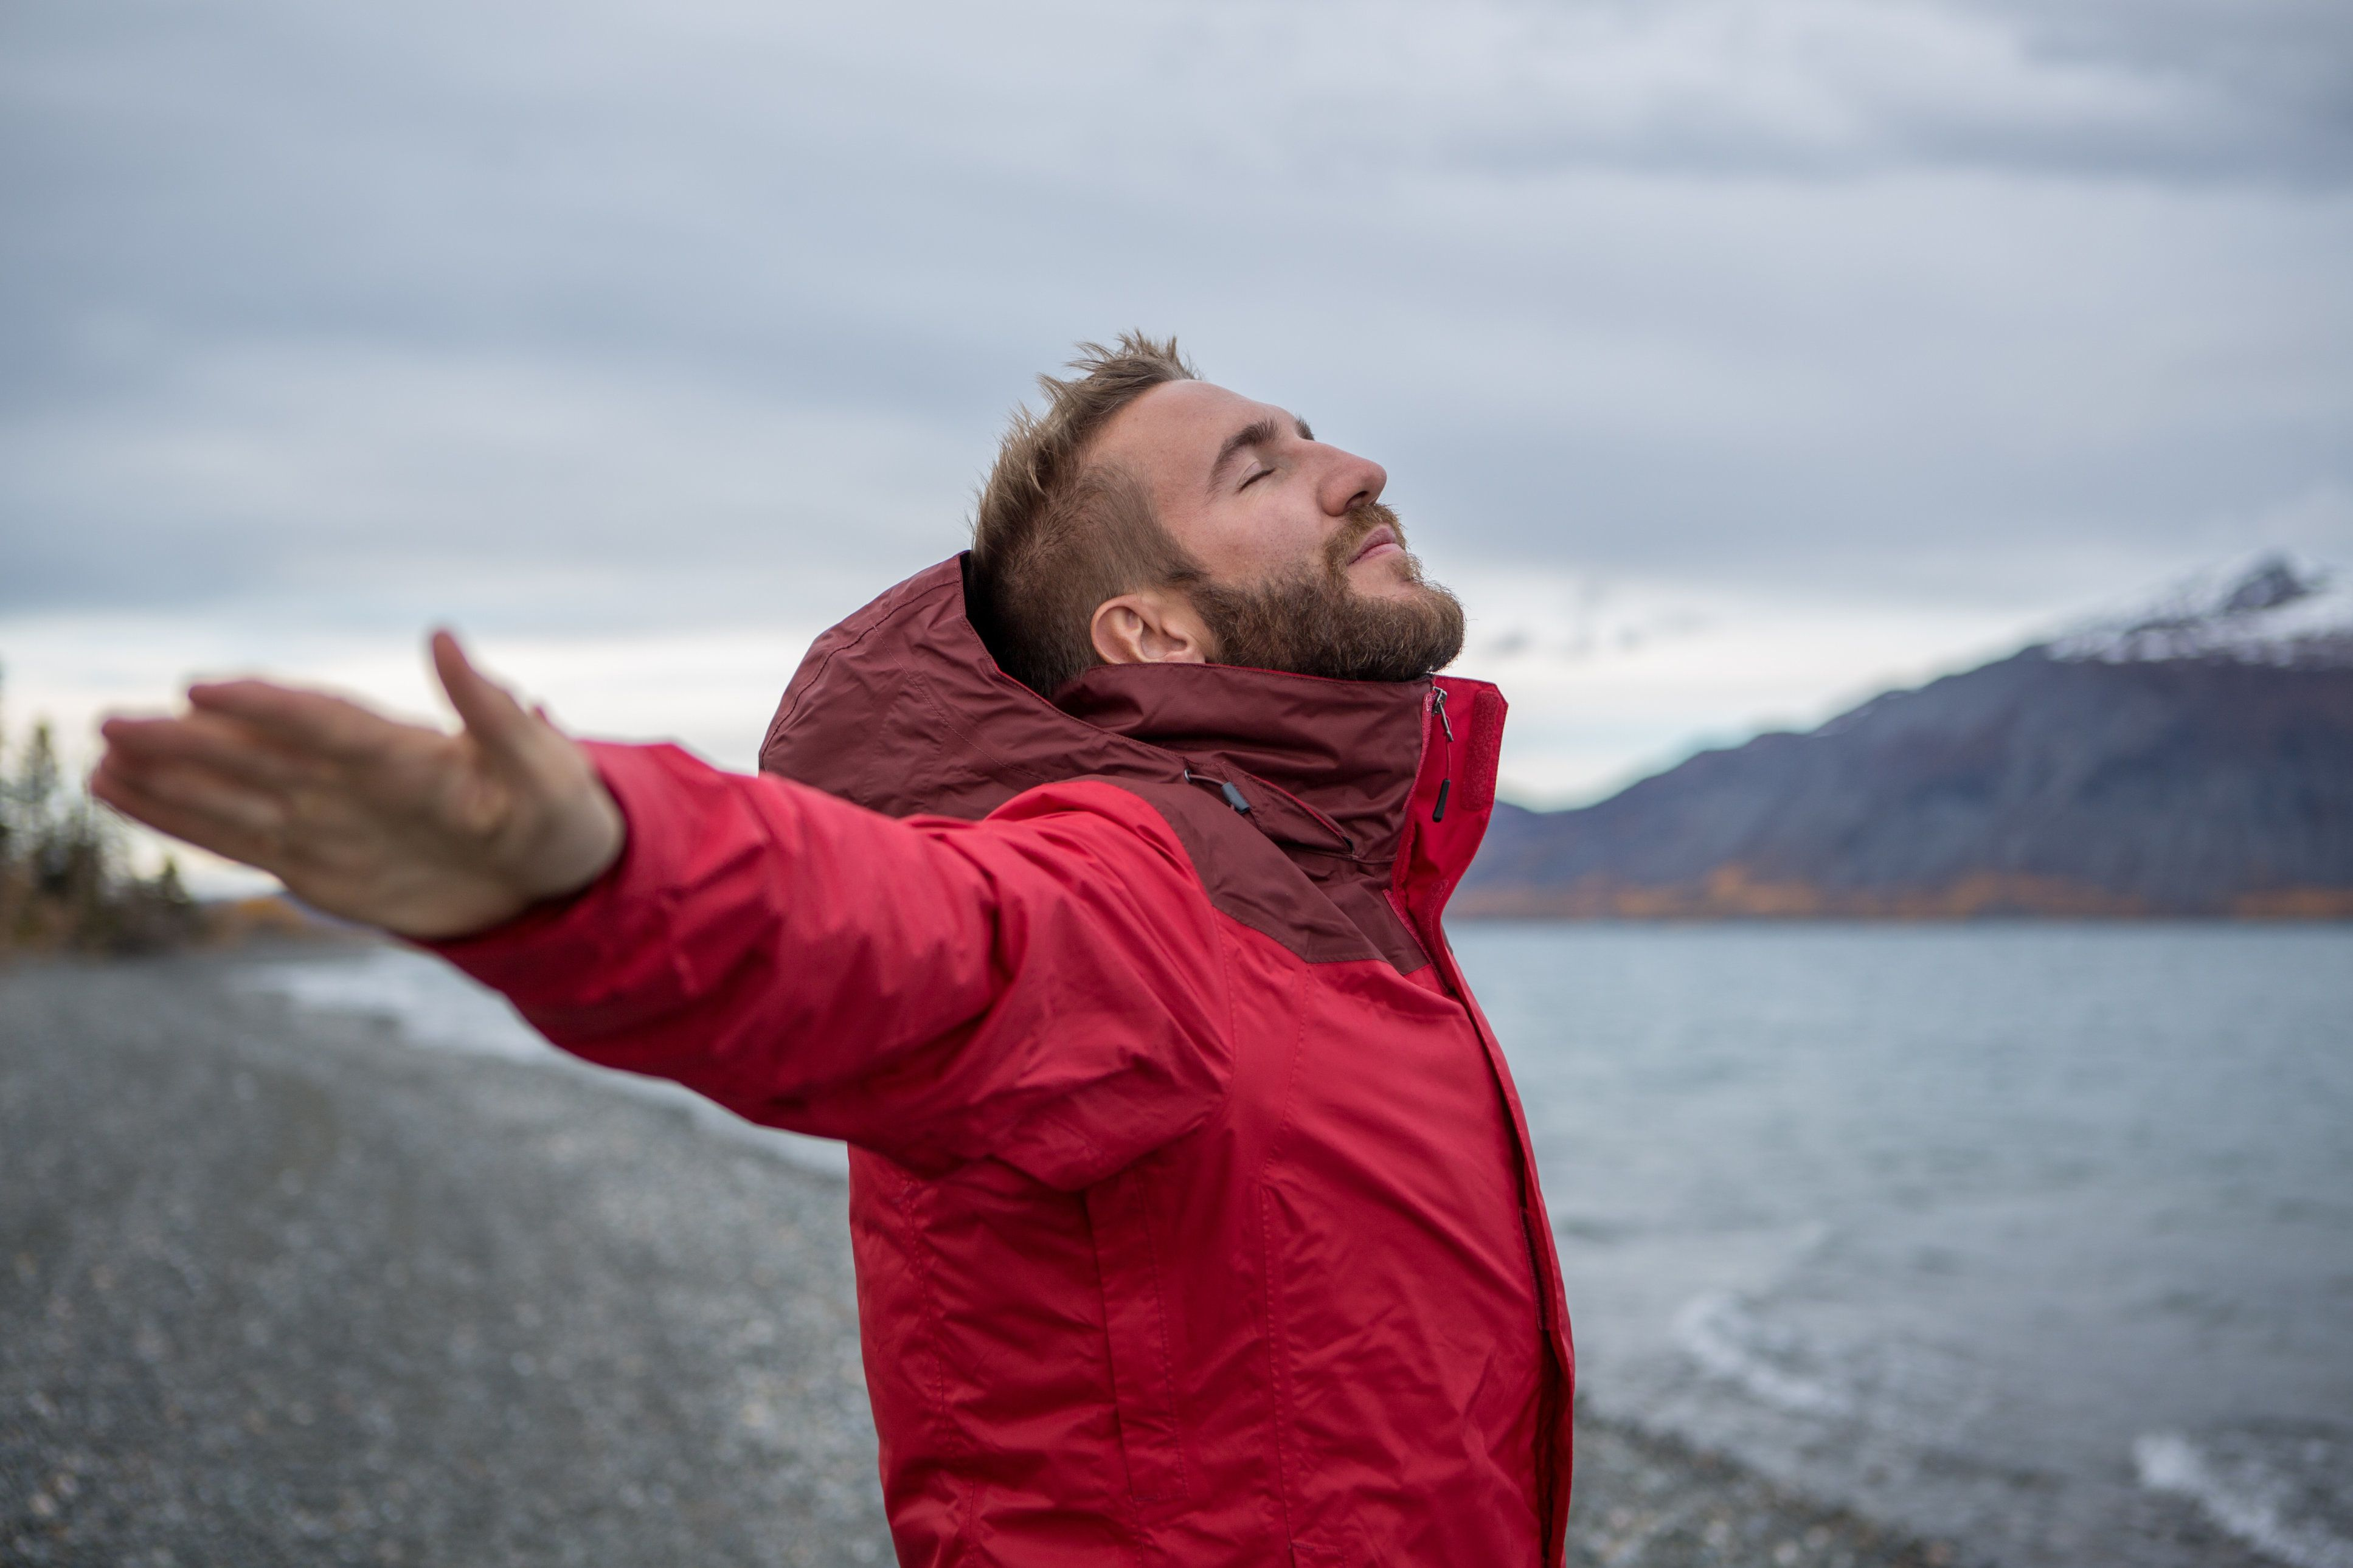 Young cheerful man by the lake enjoying nature. Arms outstretched for positive emotion.